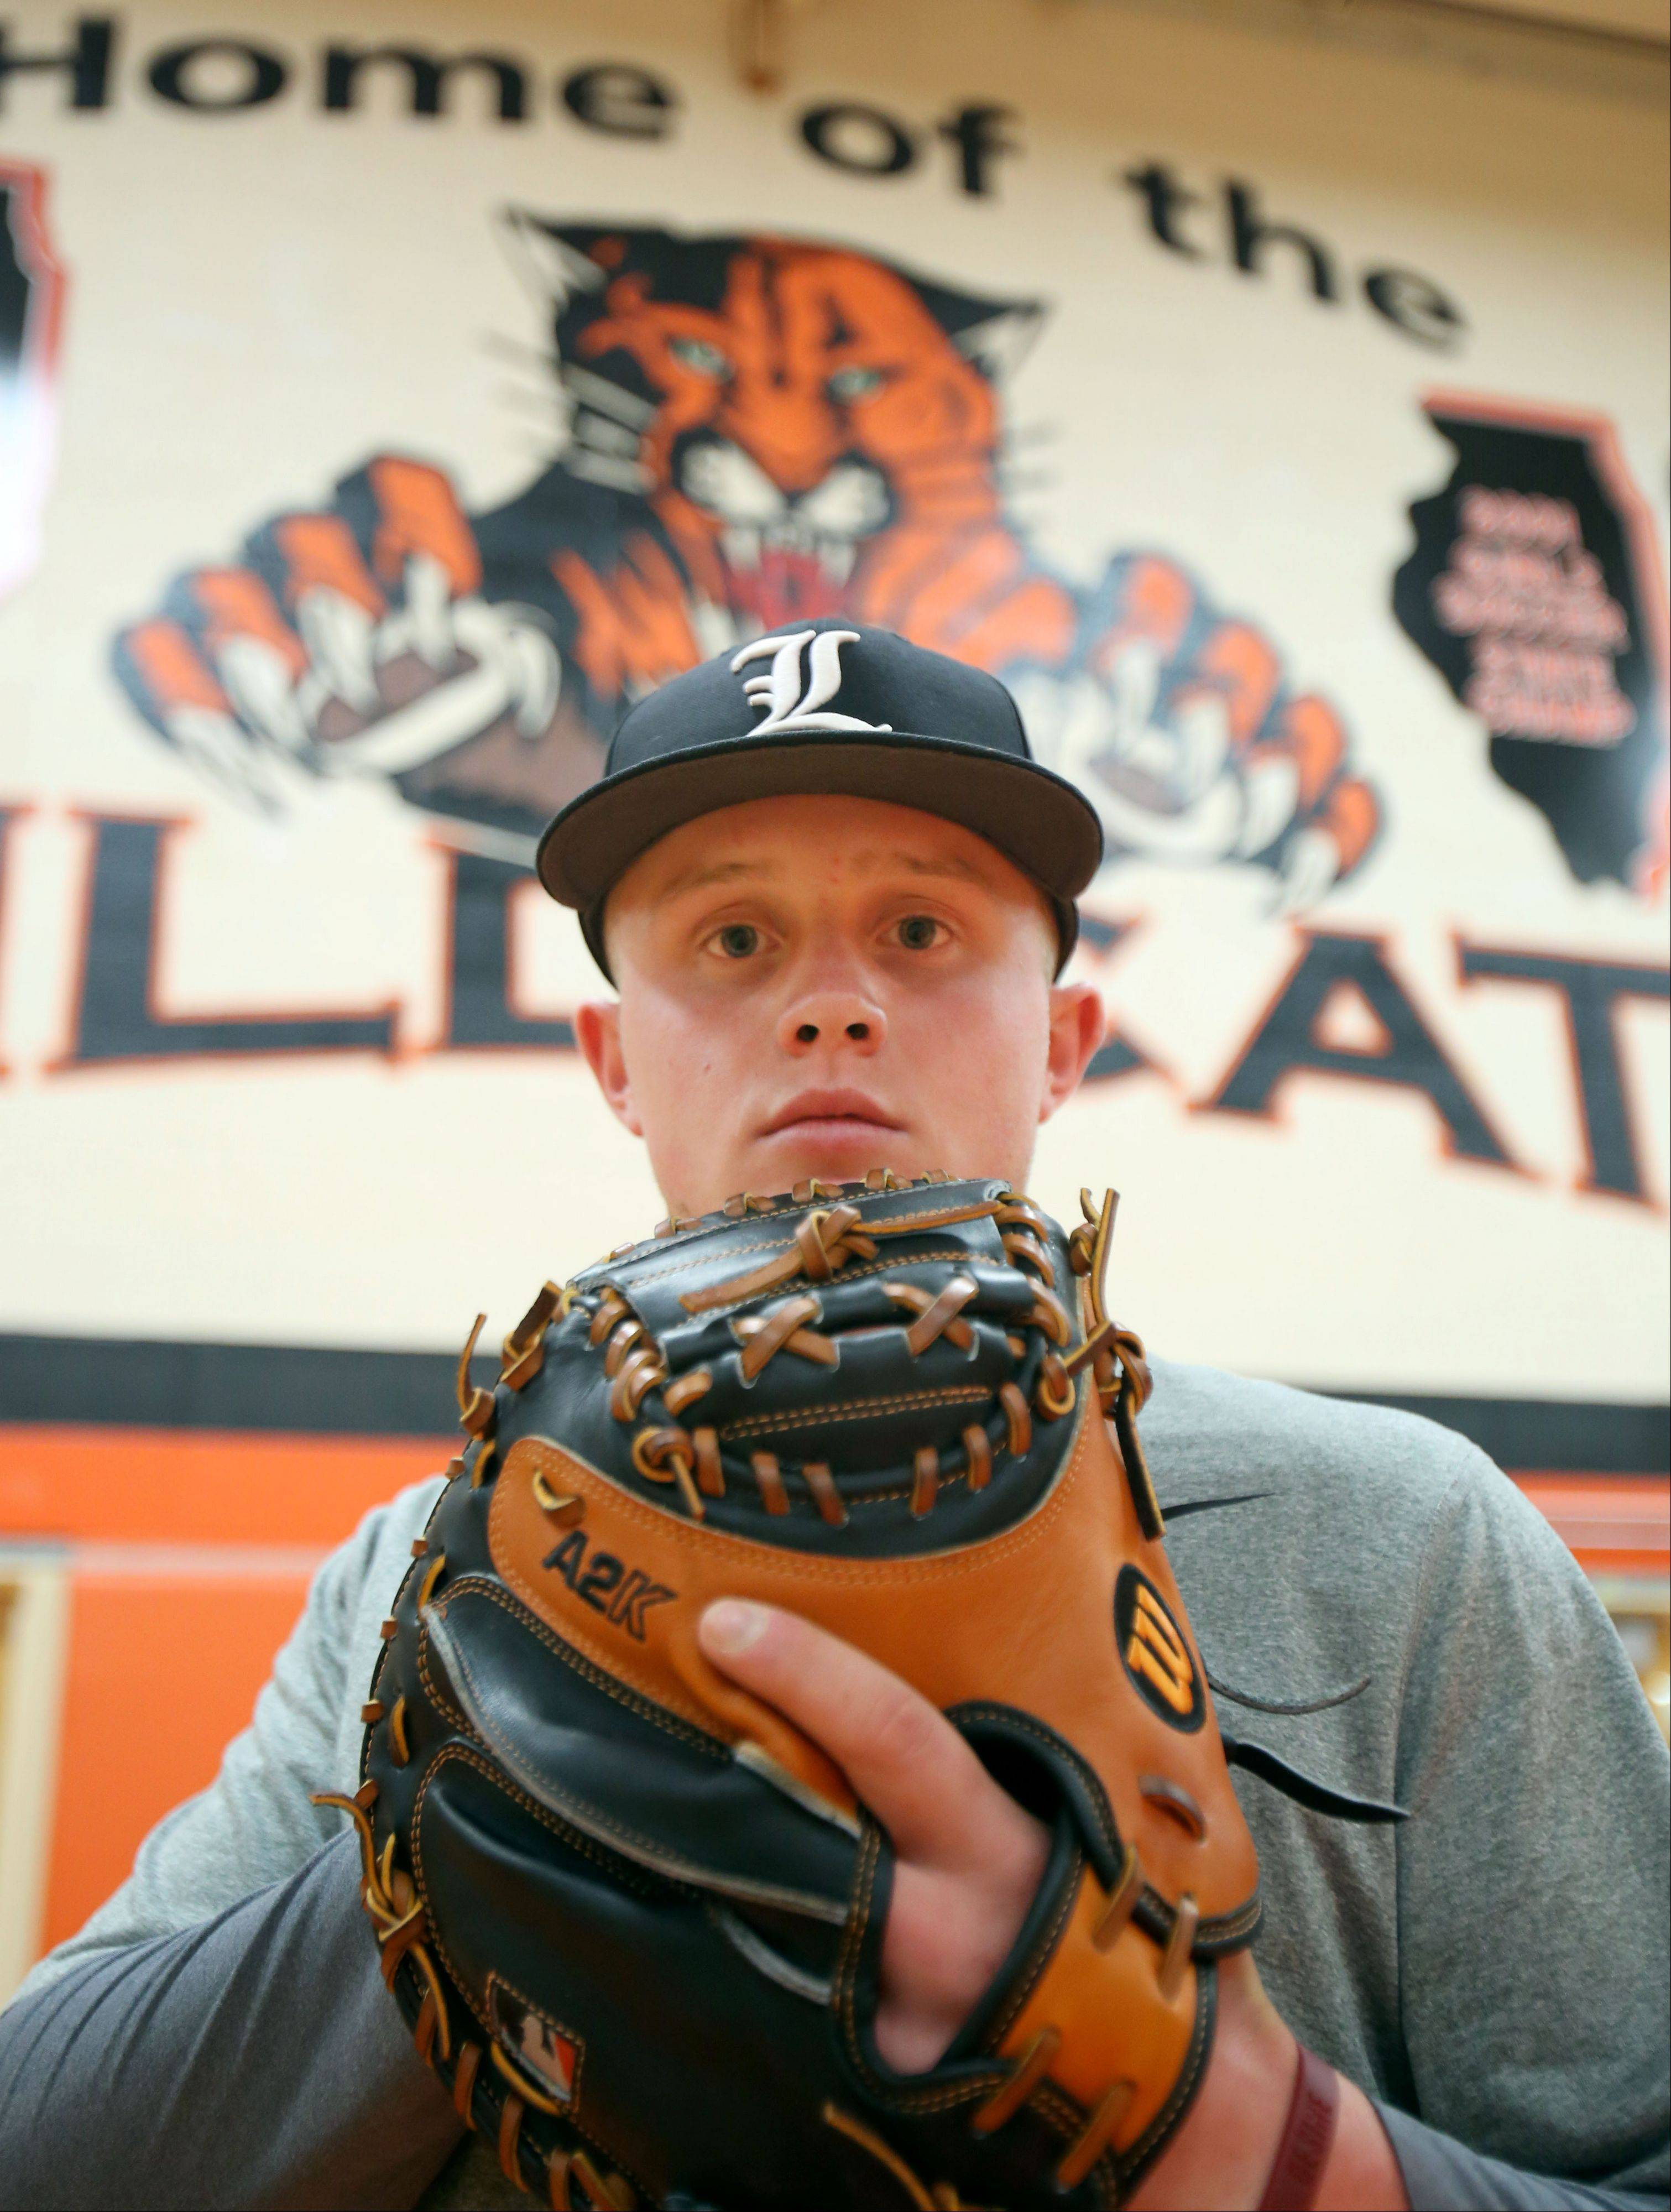 Libertyville junior catcher Evan Skoug is already getting offers from Division 1 programs.